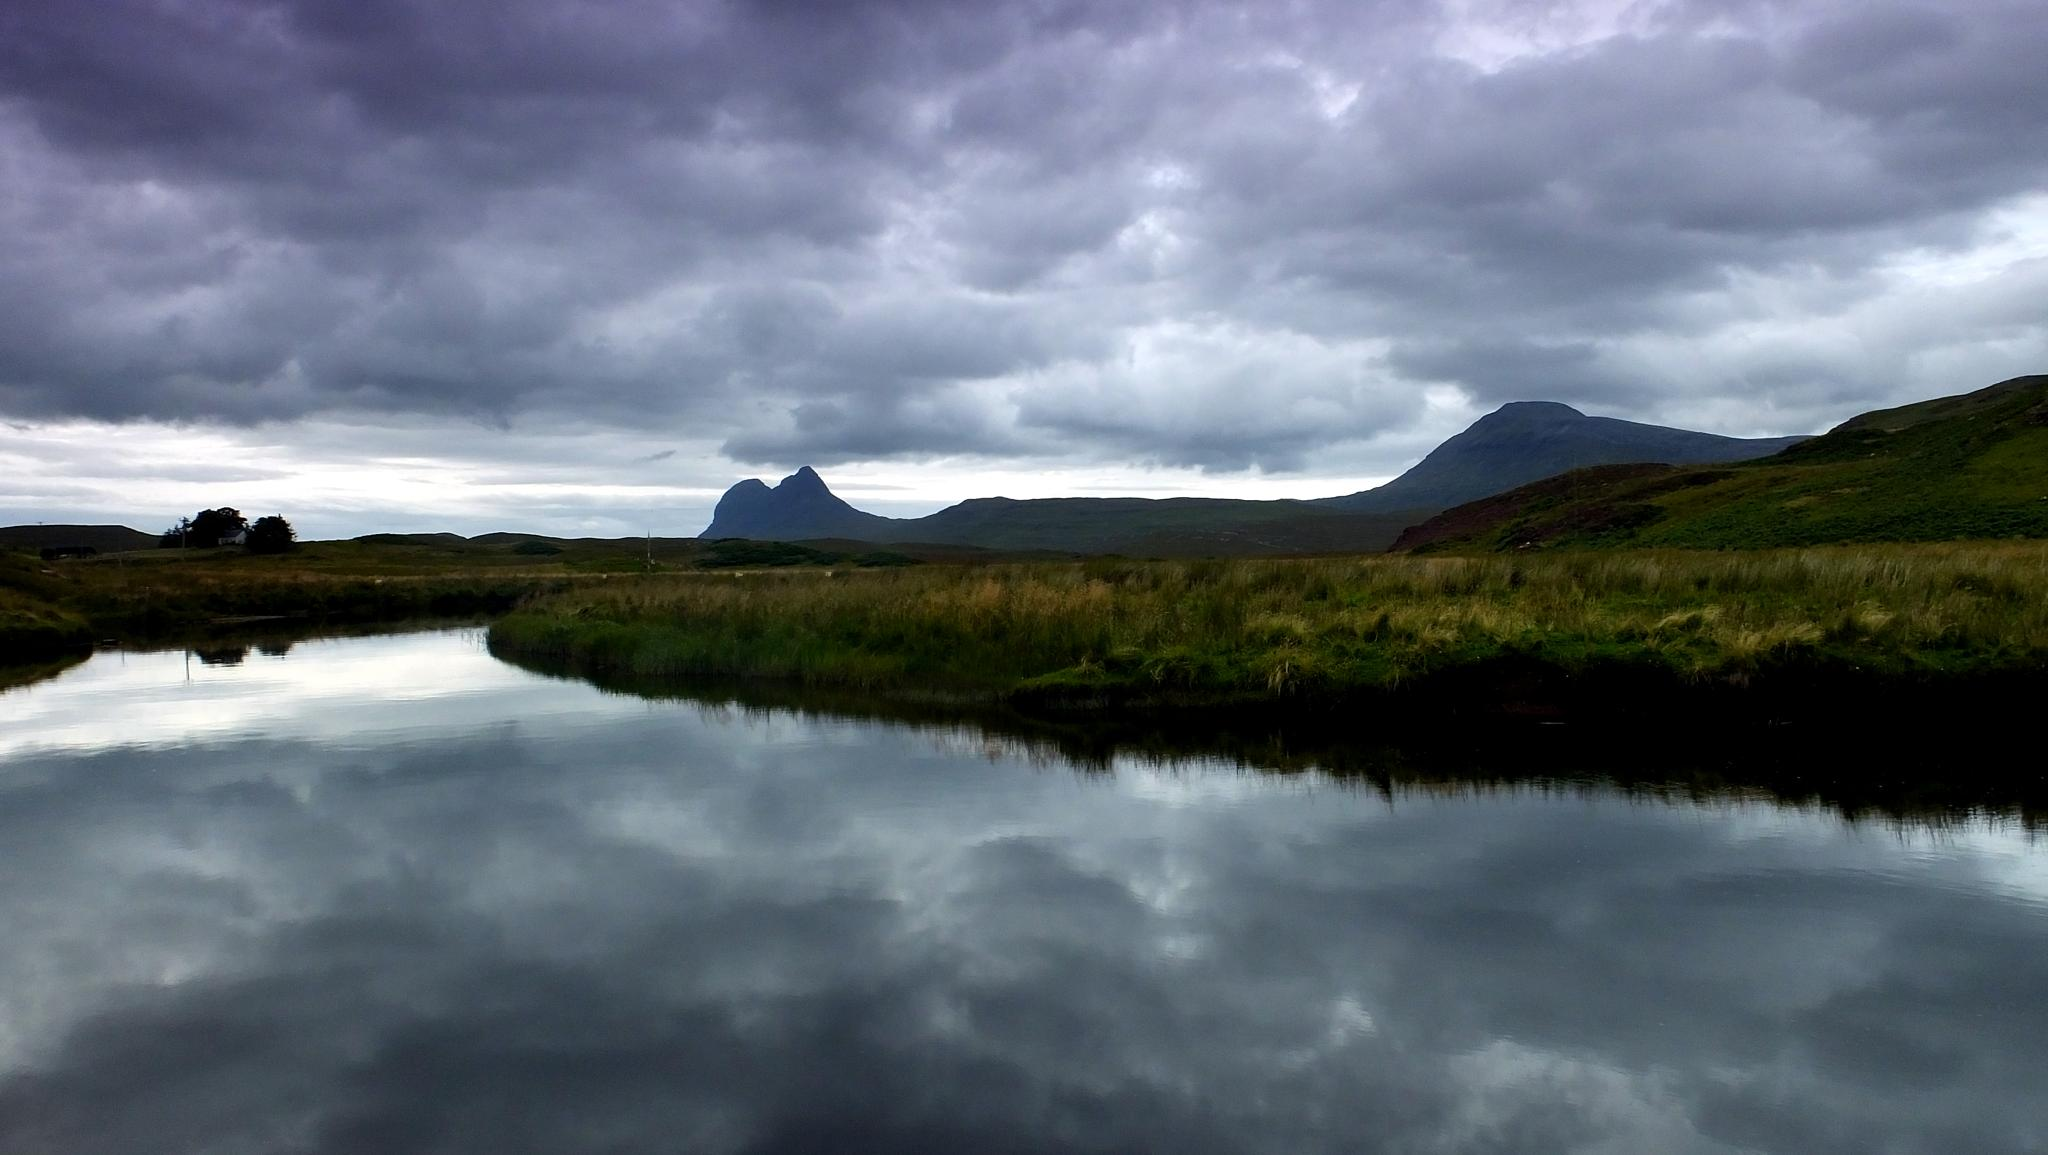 Highland River view, Scotland by WhiteArtPhotography